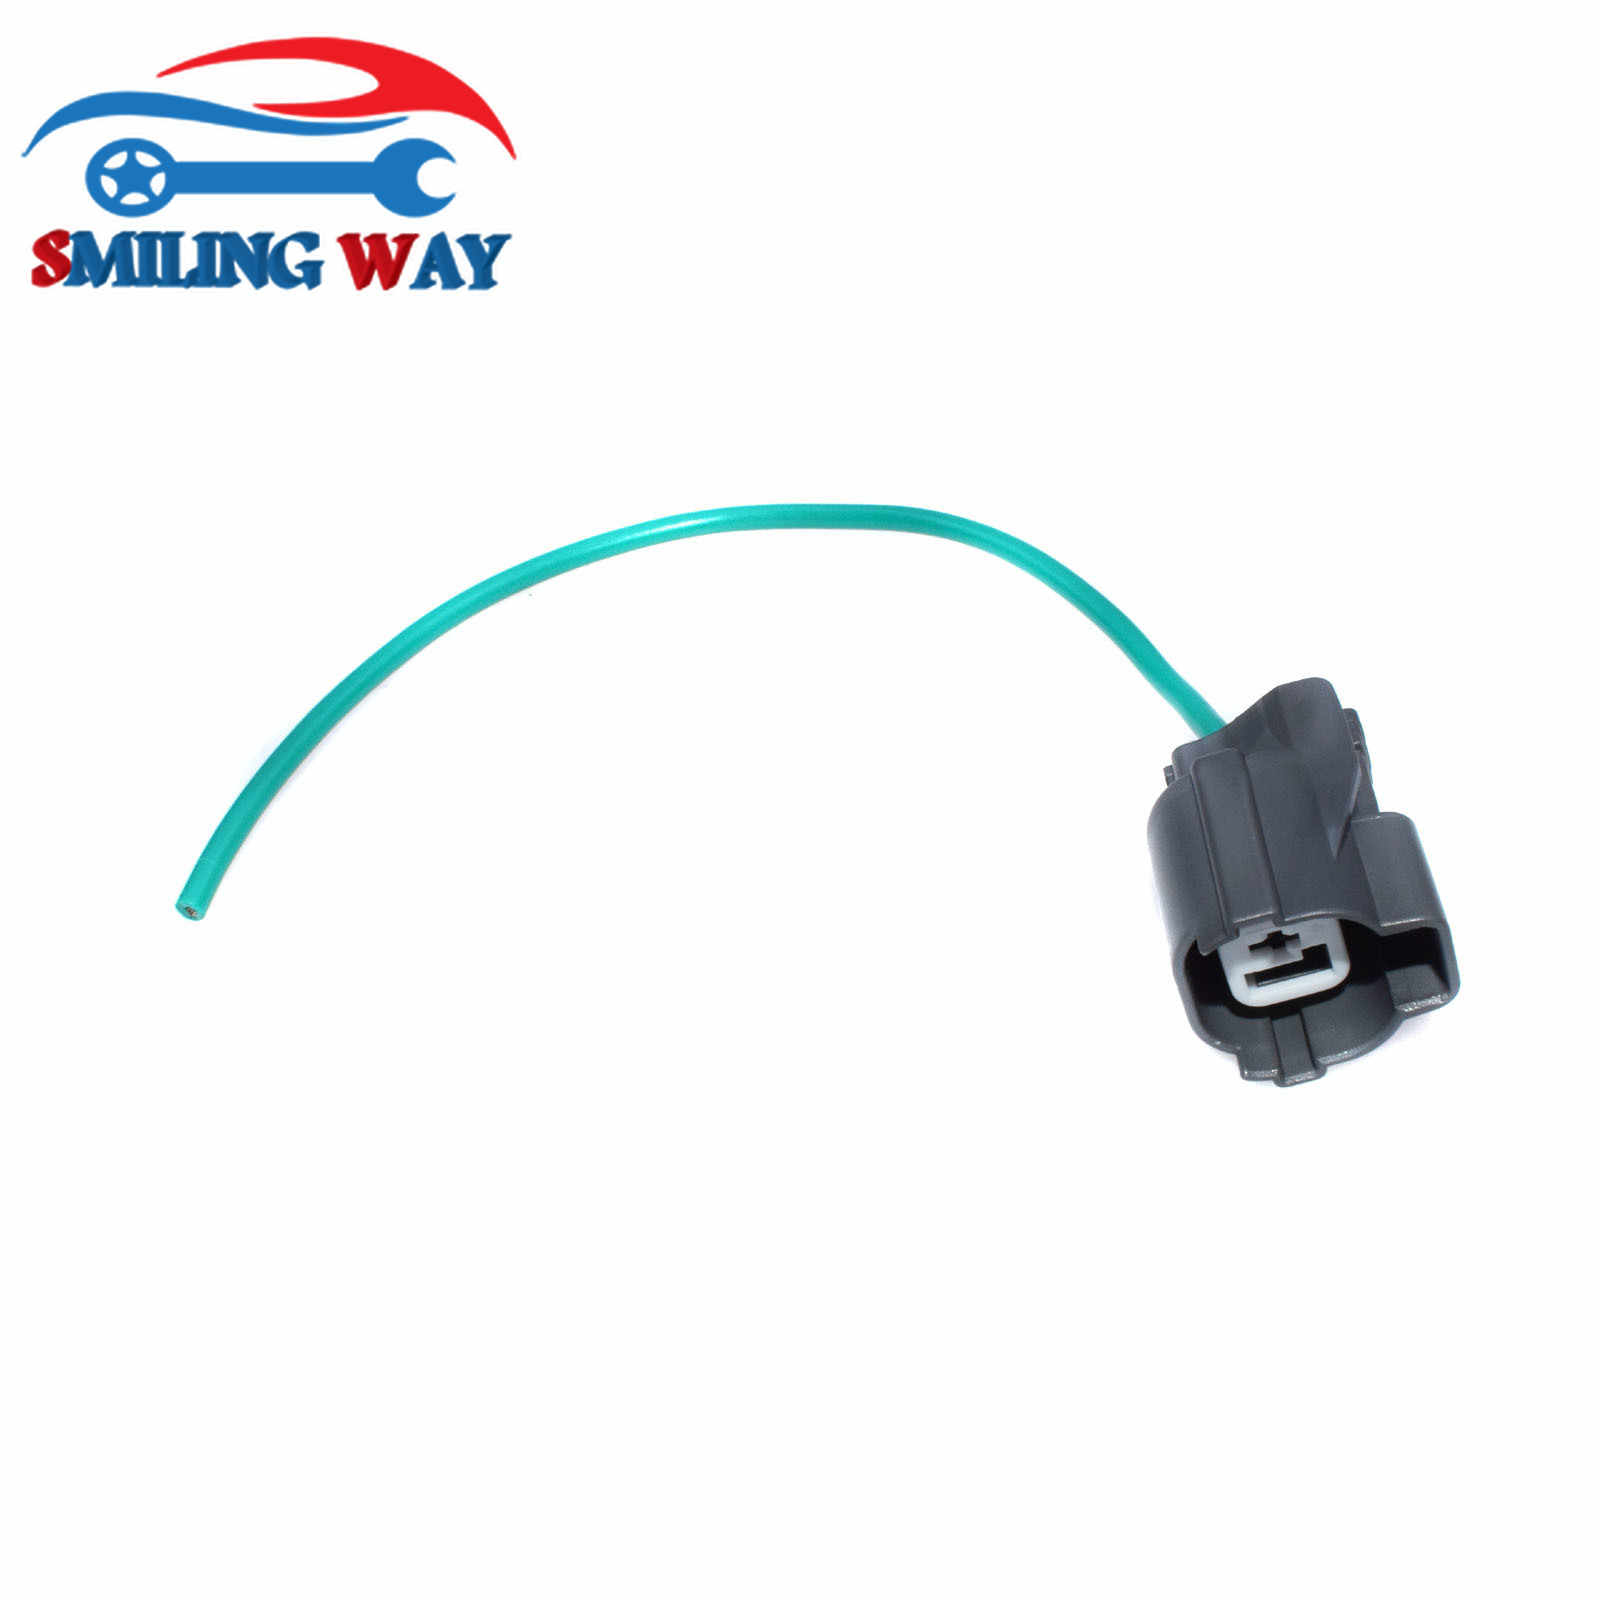 hight resolution of  vtec solenoid switch oil pressure switch connector wire harness wiring pigtail plug for honda acura